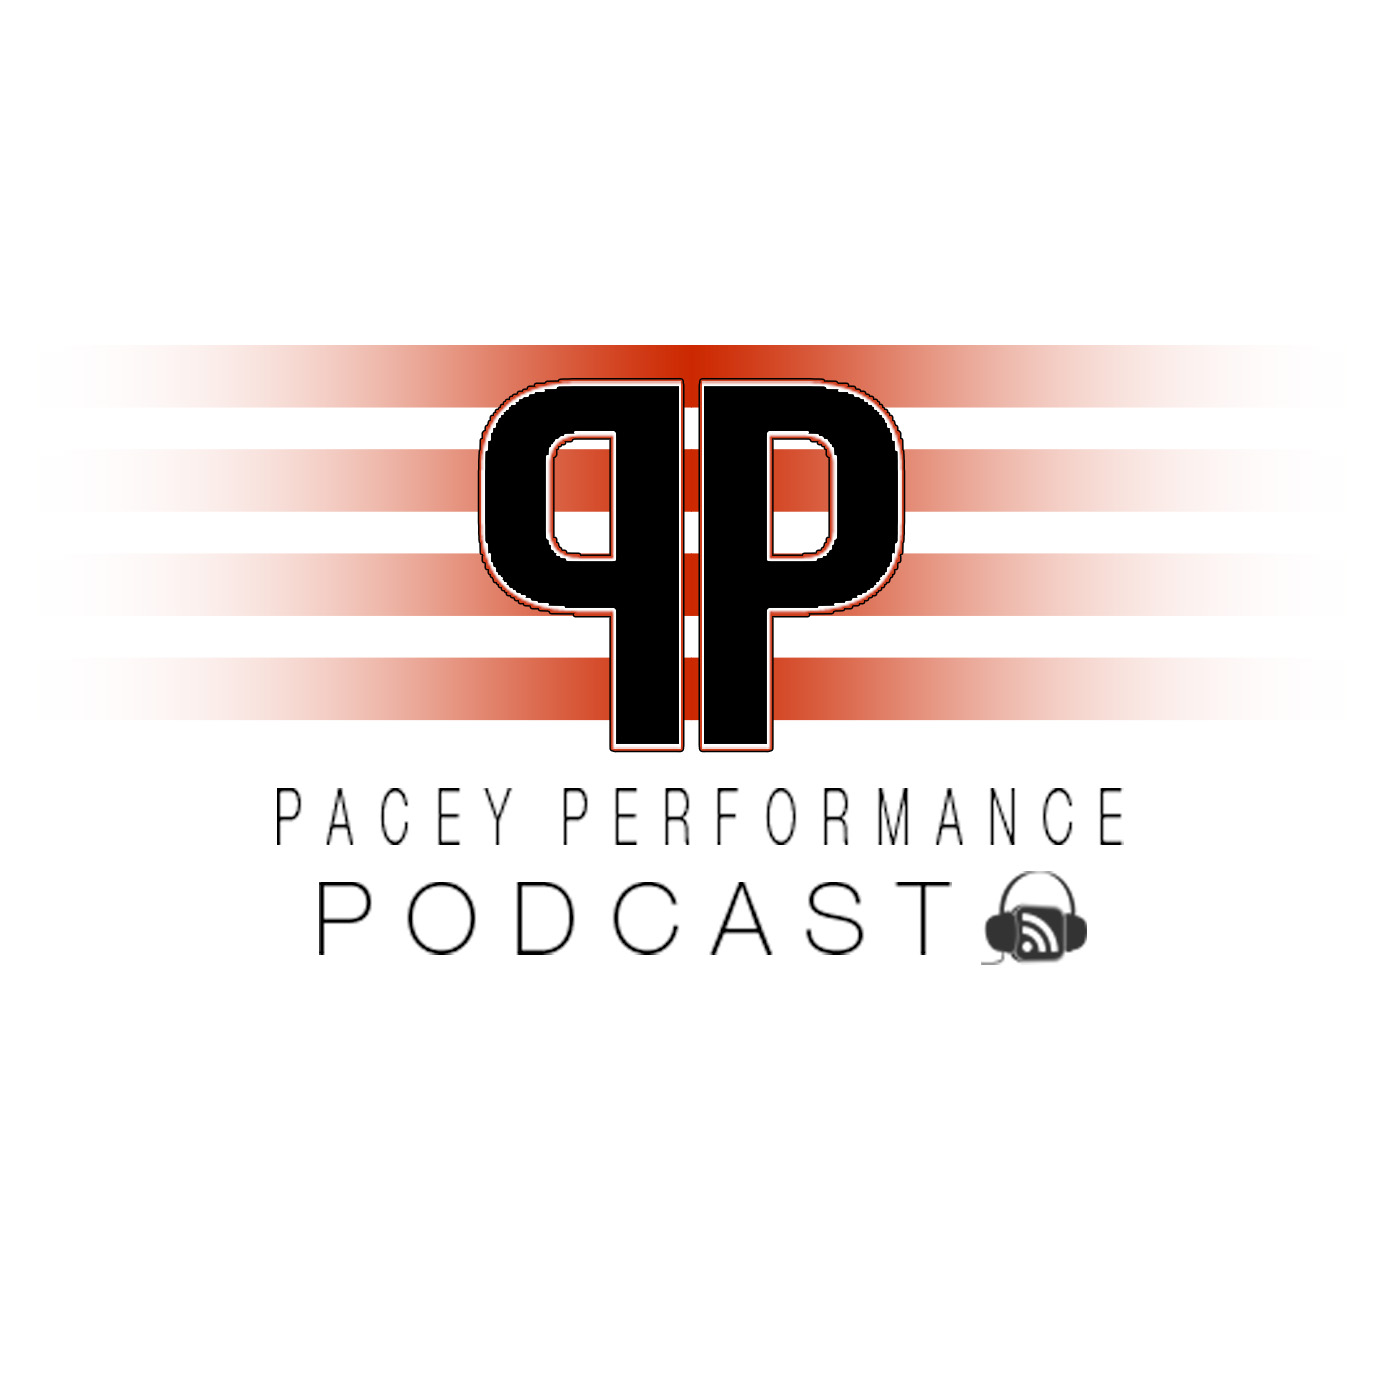 Pacey Performance Podcast #35 - Sophia Nimphius (Senior Lecturer at Edith Cowen University)